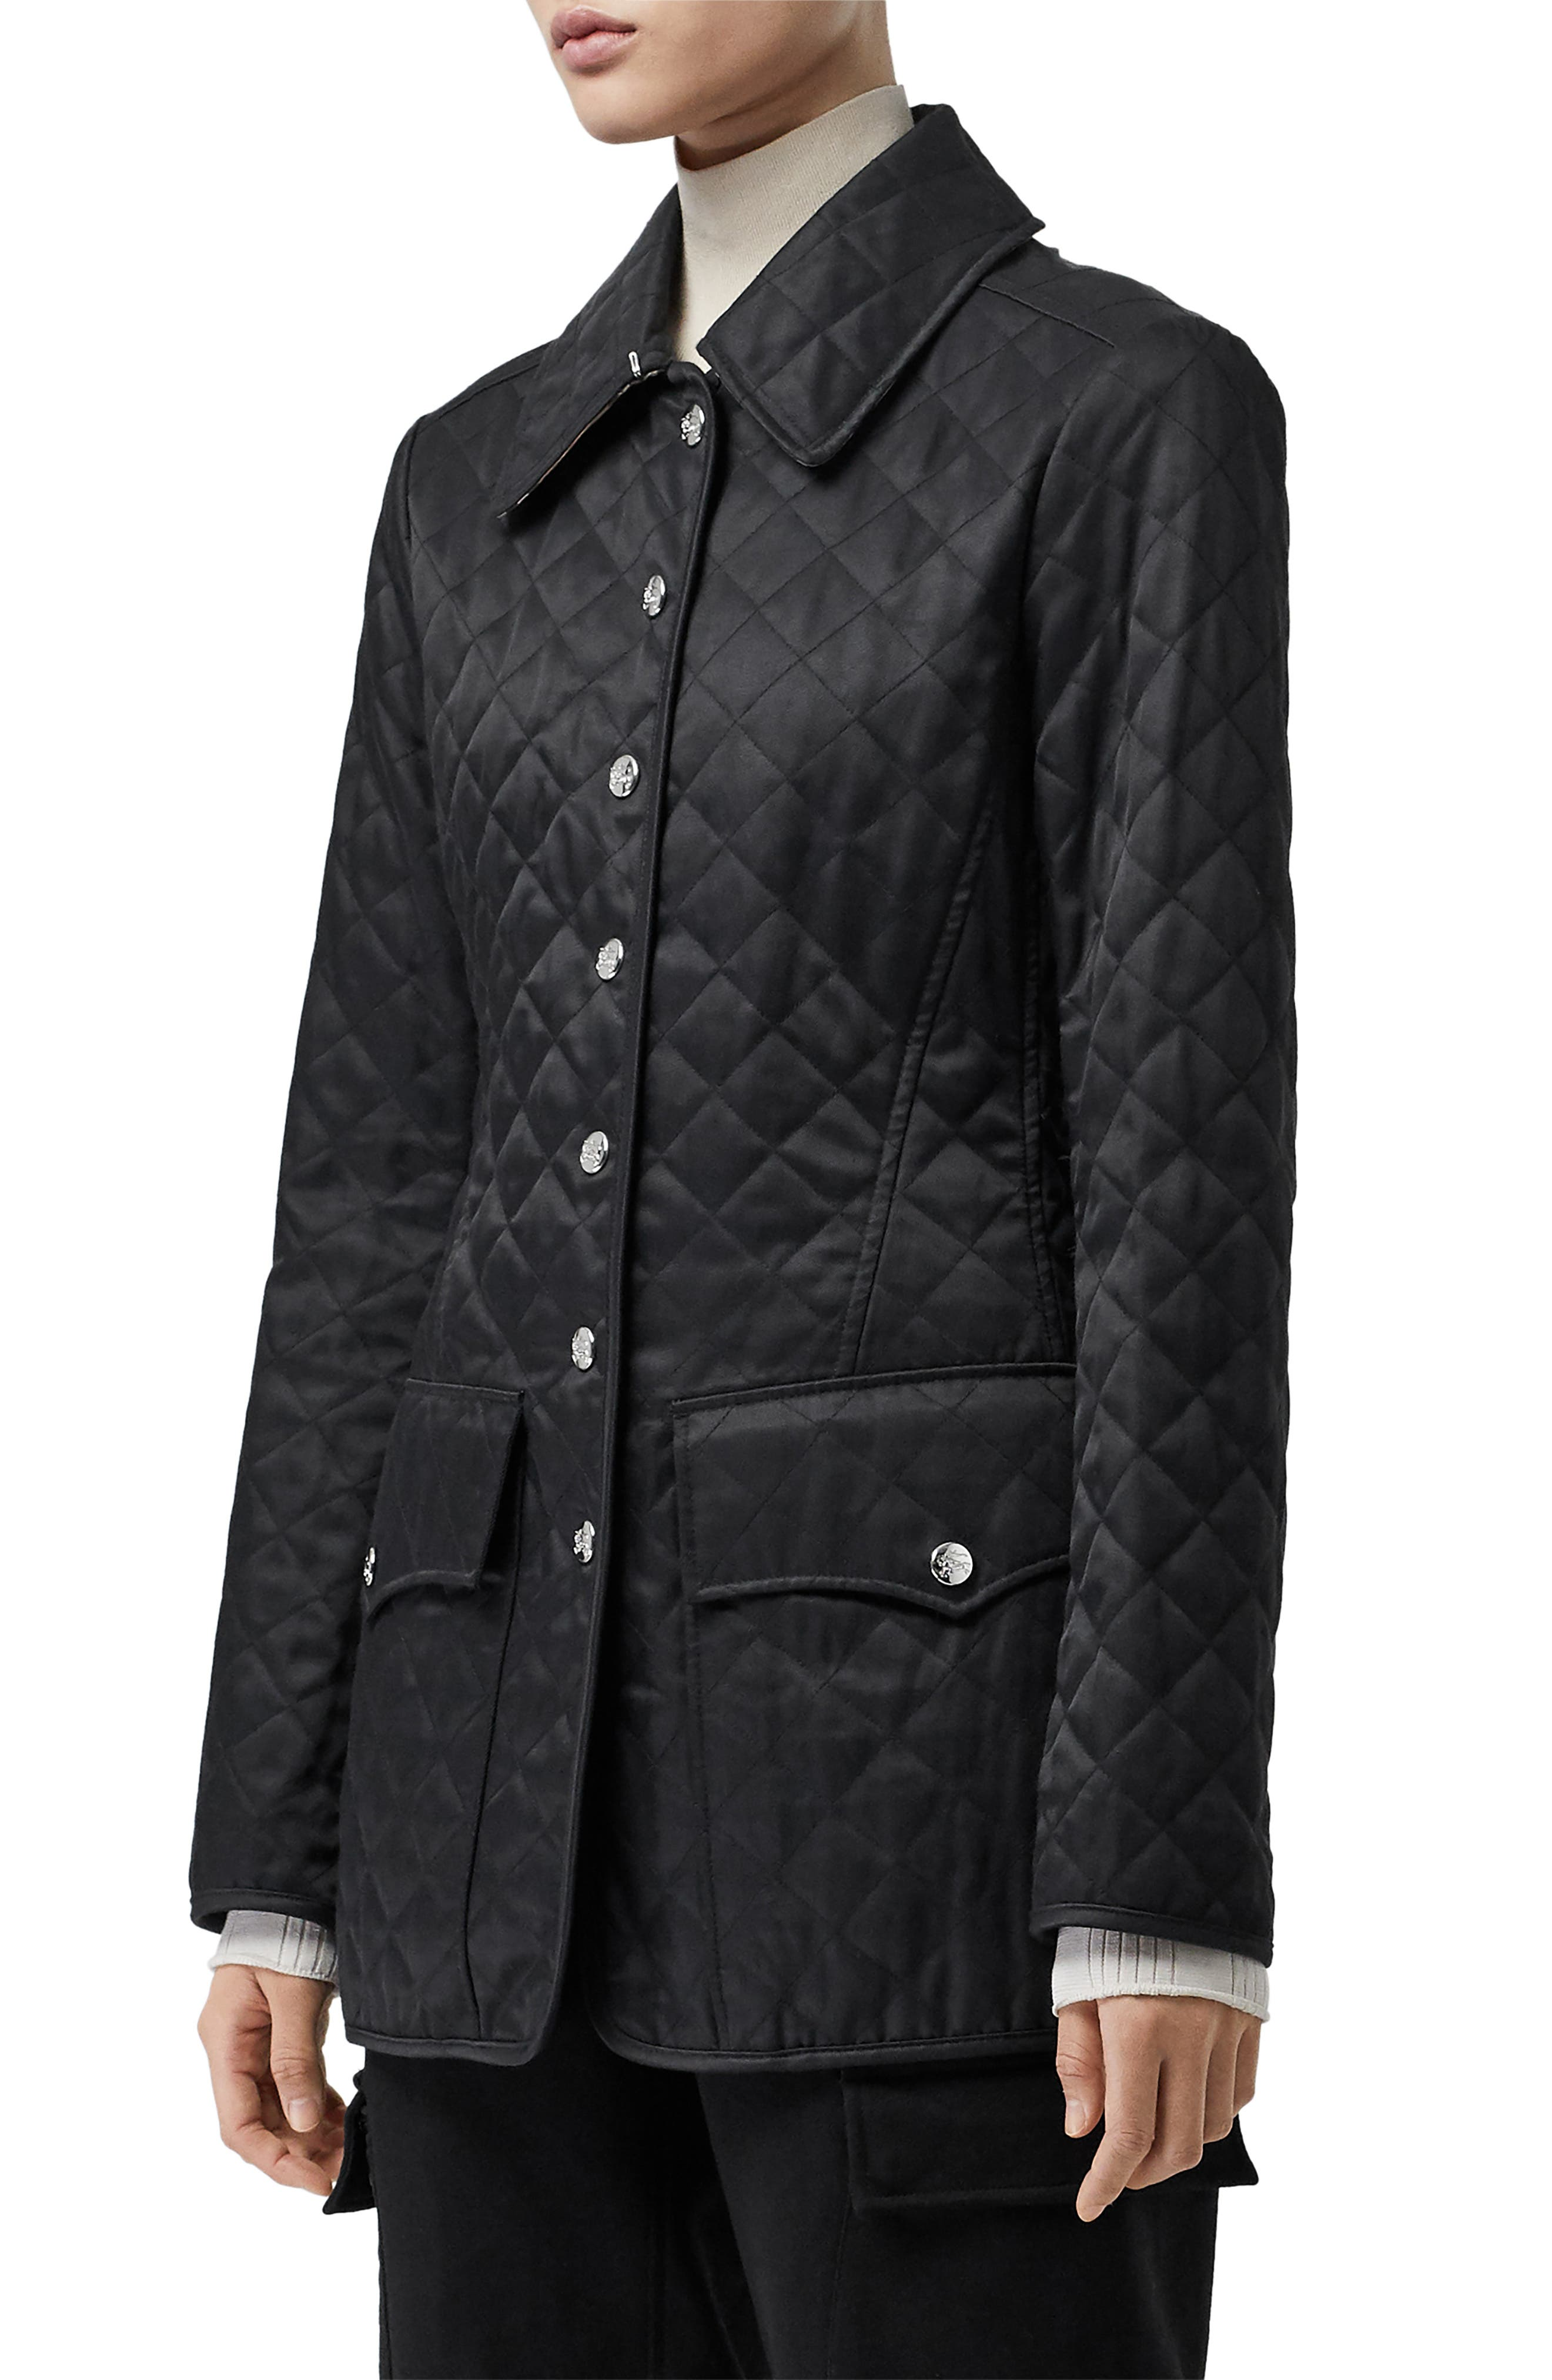 BURBERRY,                             Borthwicke Quilted Jacket,                             Alternate thumbnail 3, color,                             BLACK